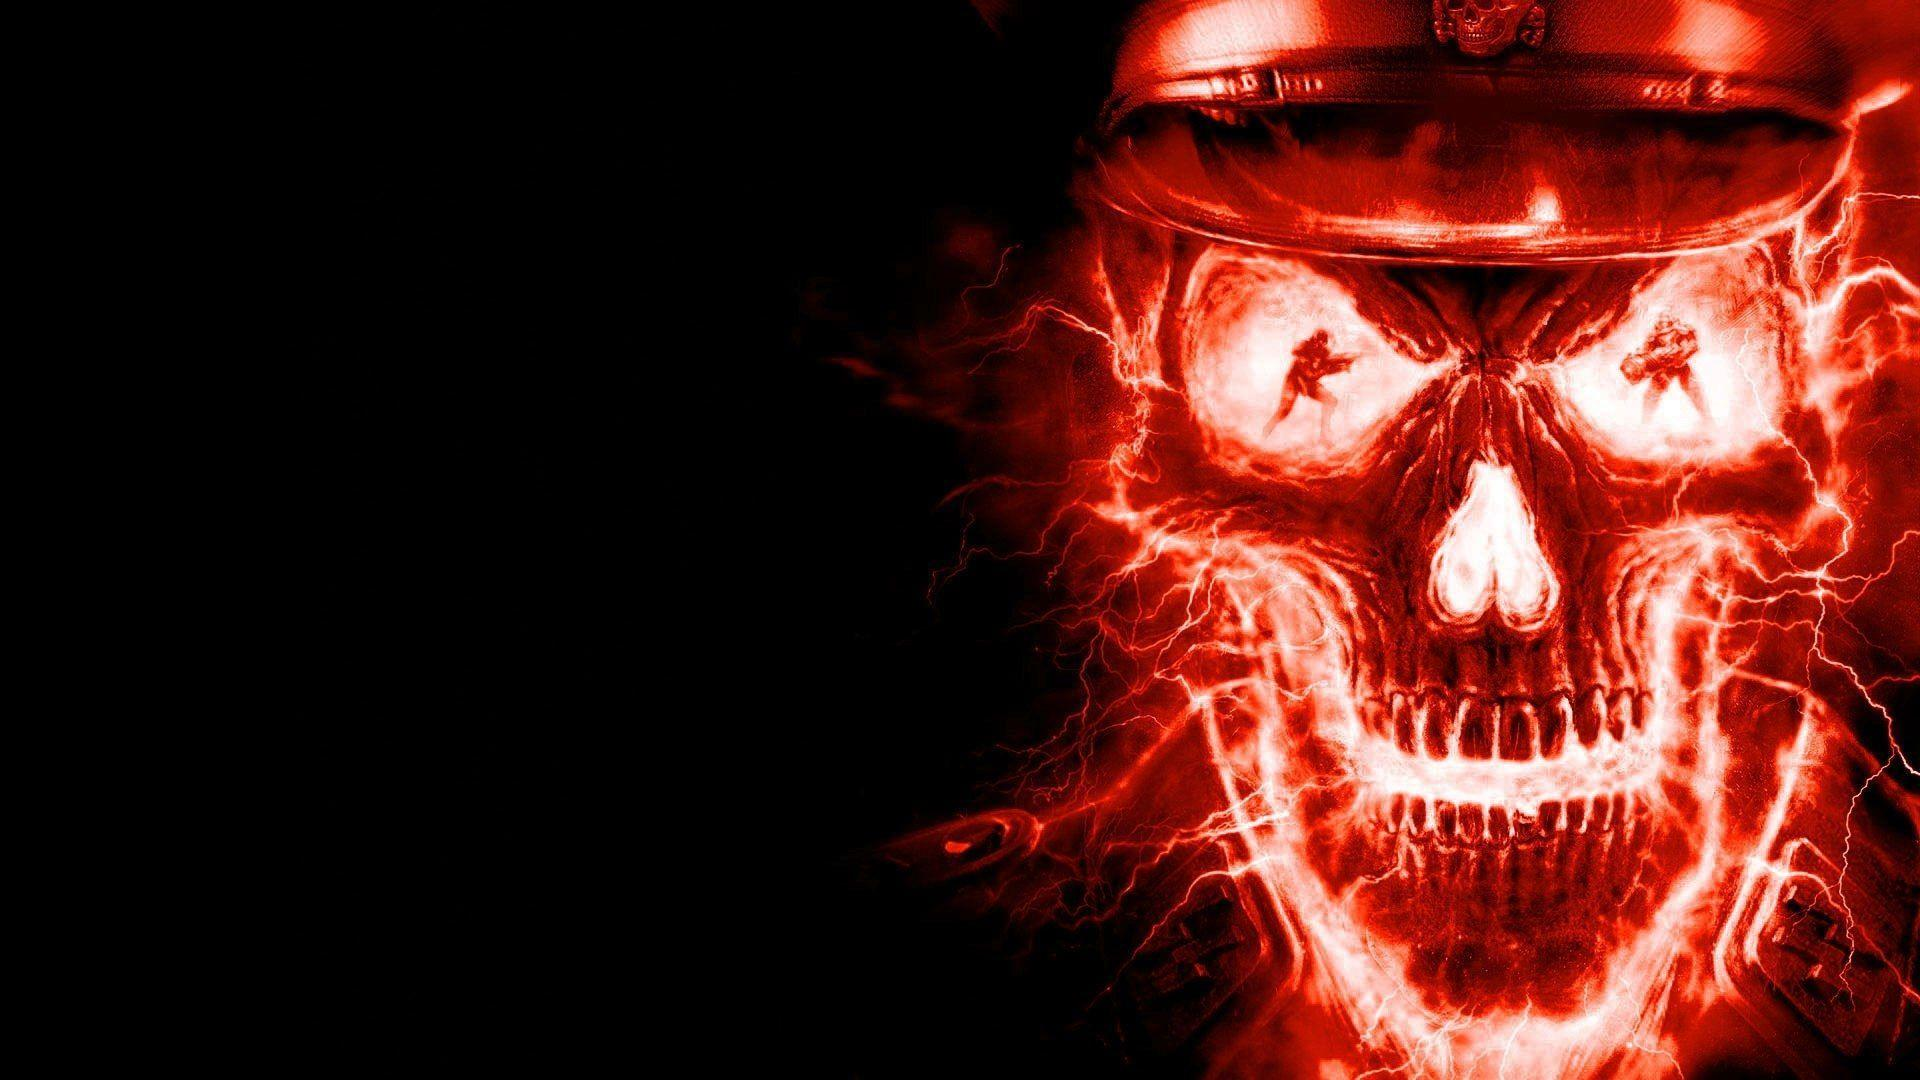 Fire Skull Wallpapers Free Download High 1920x1080PX ~ Music Skull